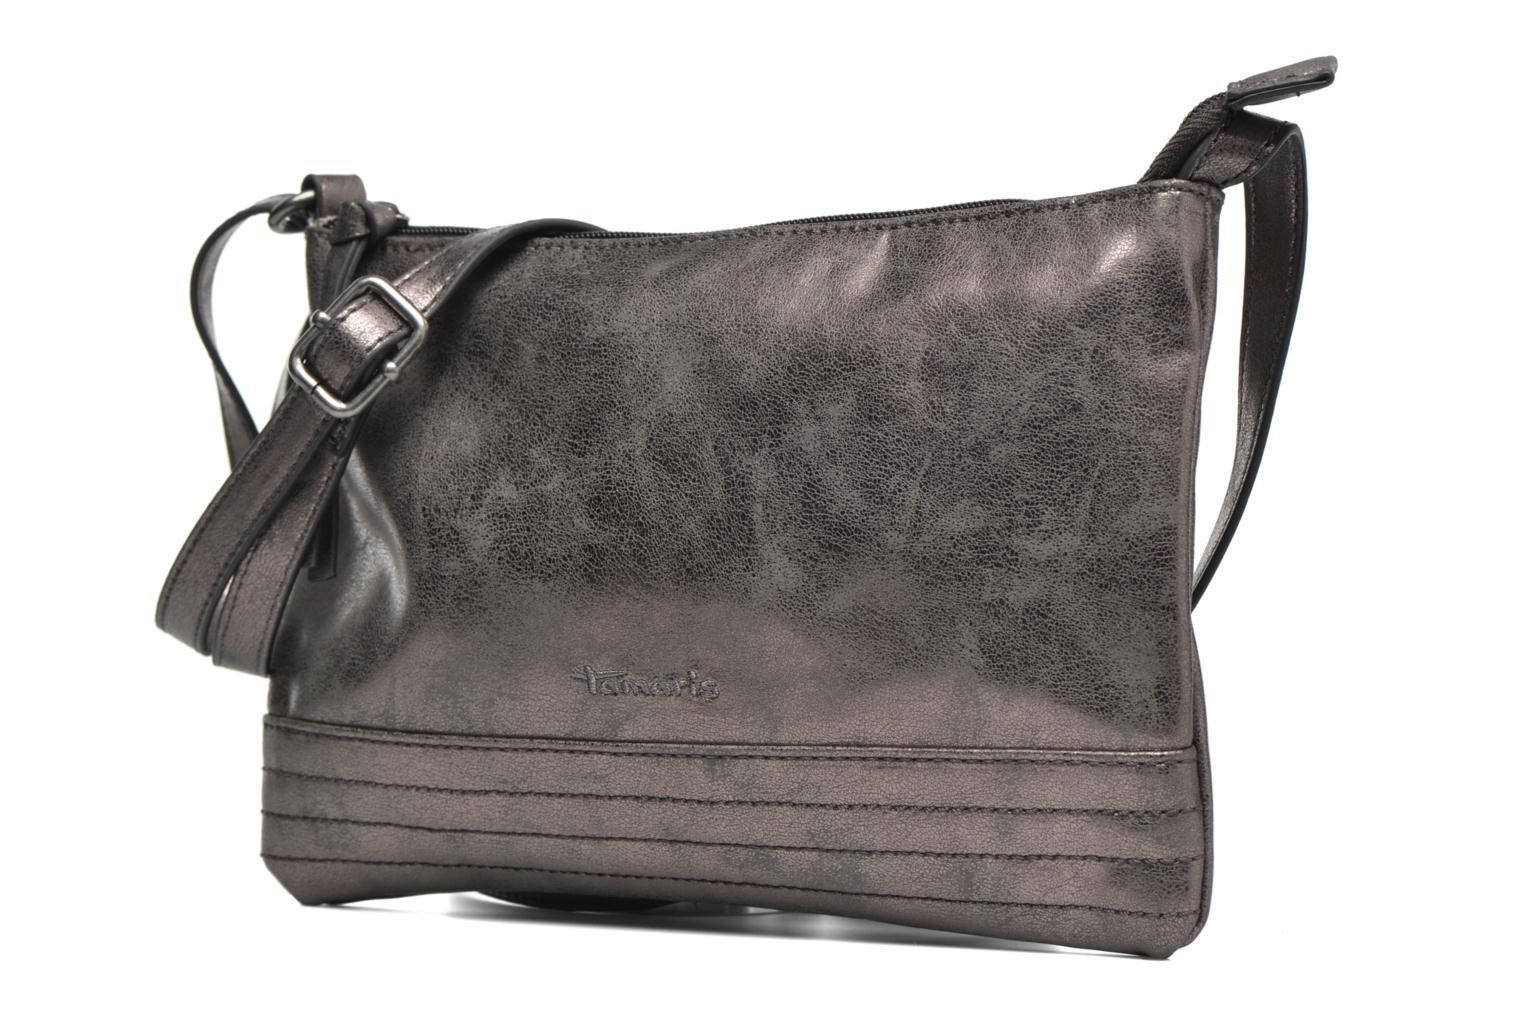 CRIZIA Small crossbody bag Pewter